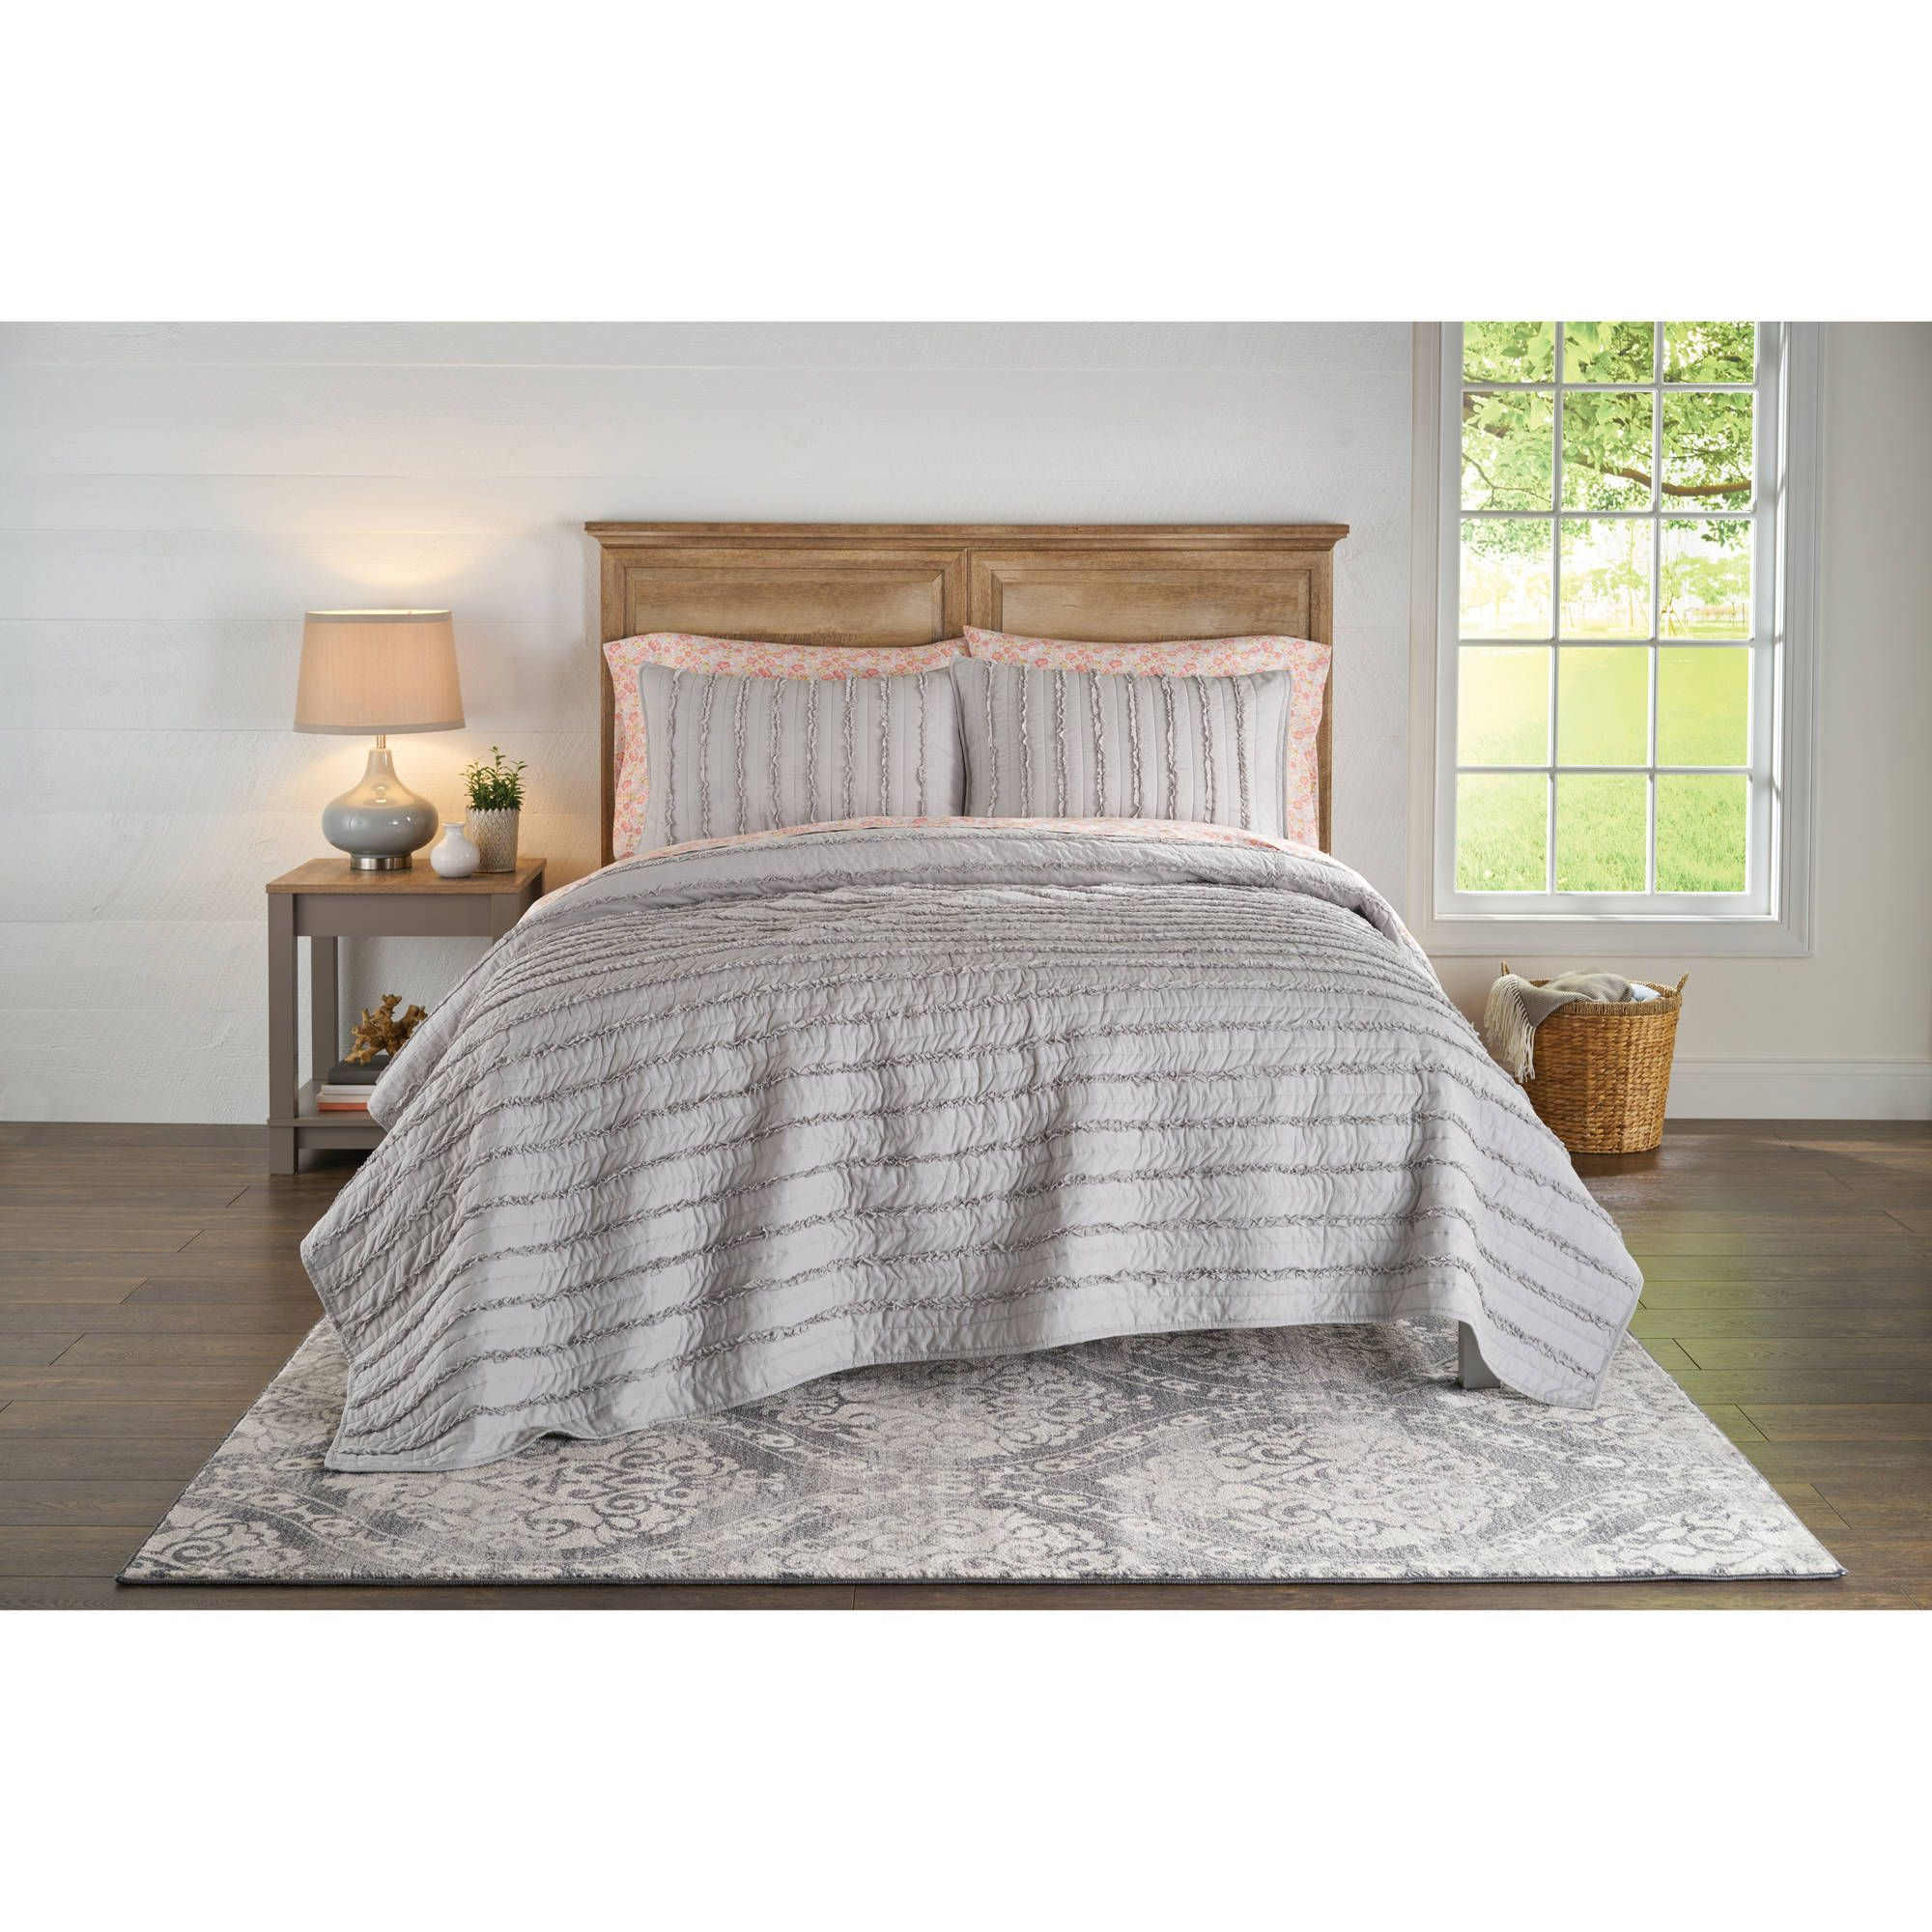 5646305307d690d50e62ce7aeb324073 - Better Homes And Gardens Pleated Diamond Quilt Collection